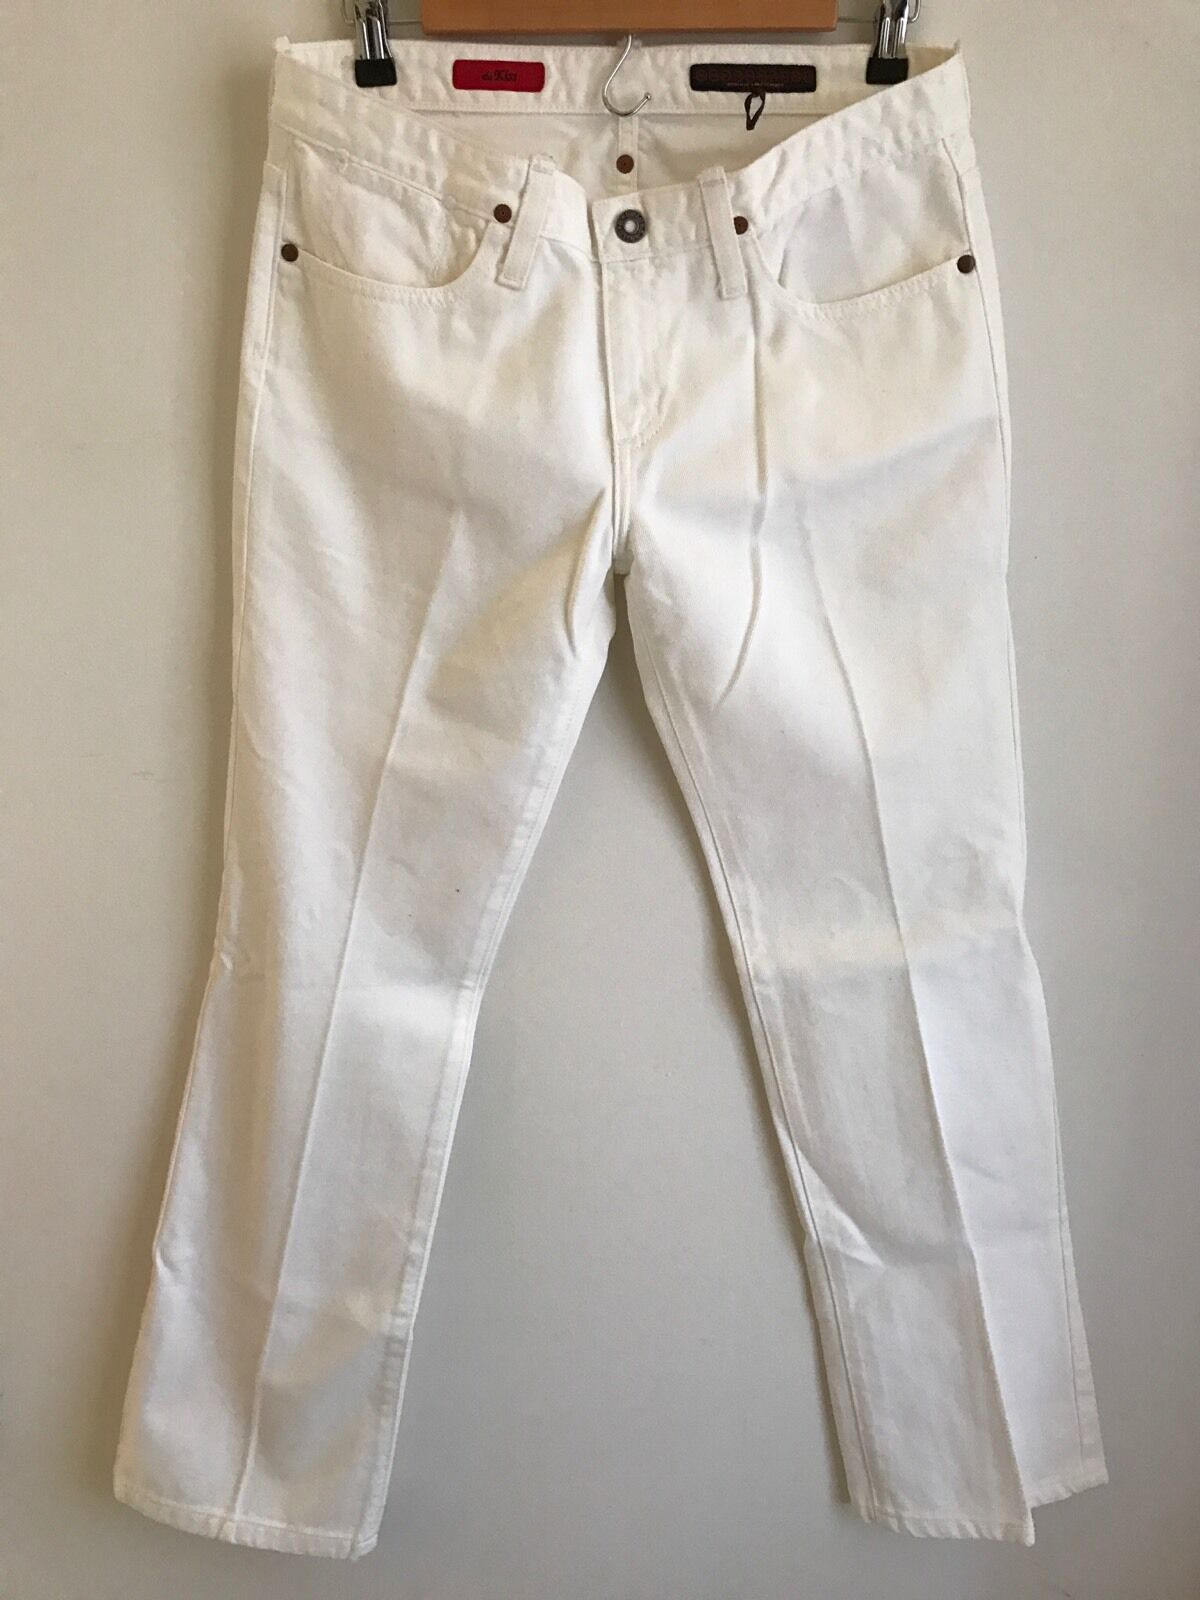 AG Adriano goldschmied Kiss White Denim Jeans  Straight Leg Low Rise Sz 28 Women